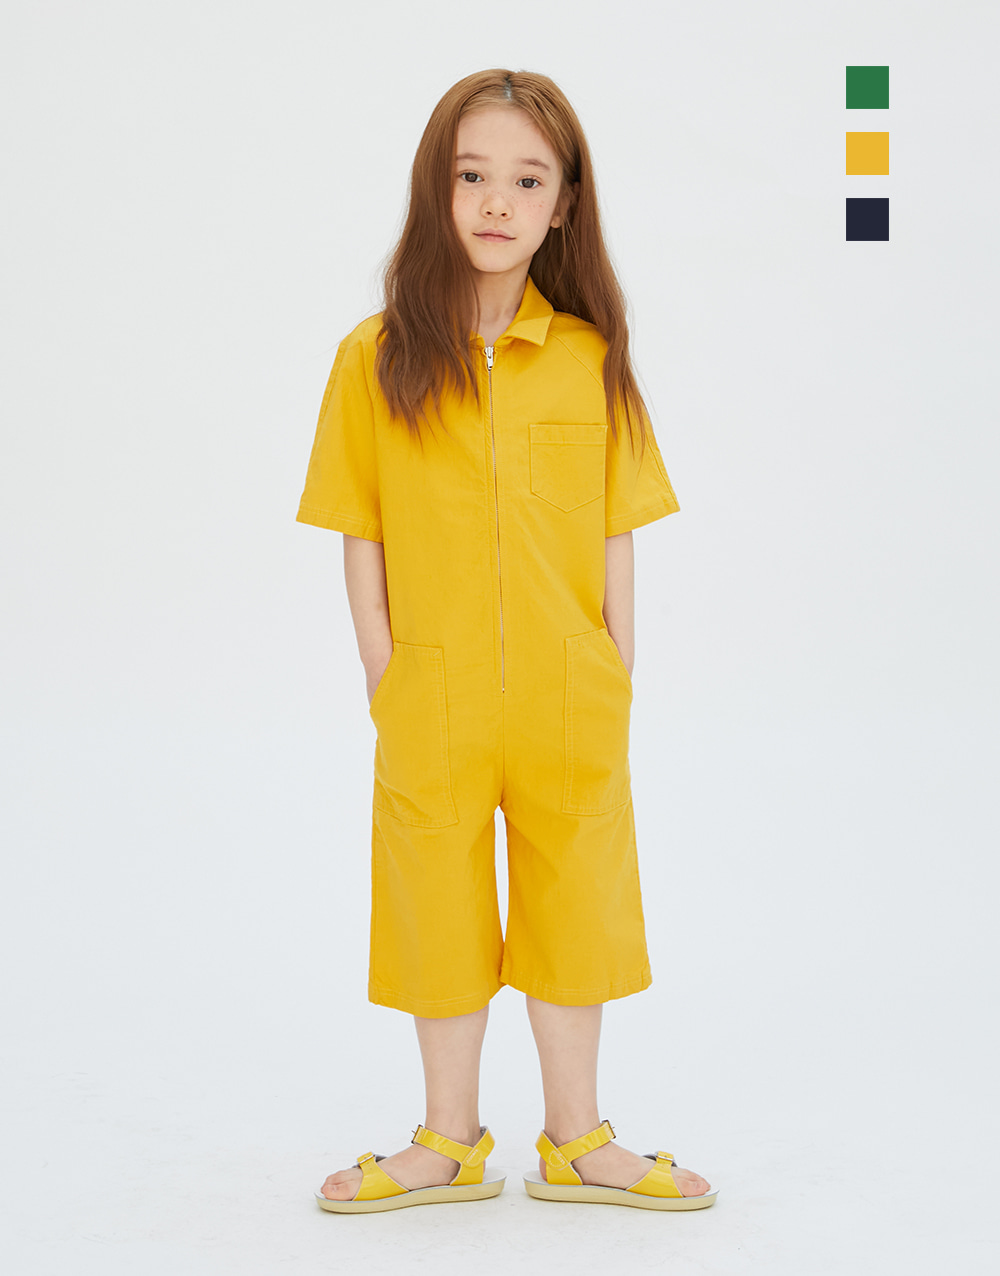 GBH APPAREL KIDS  WORK SUIT  (3 COLORS)